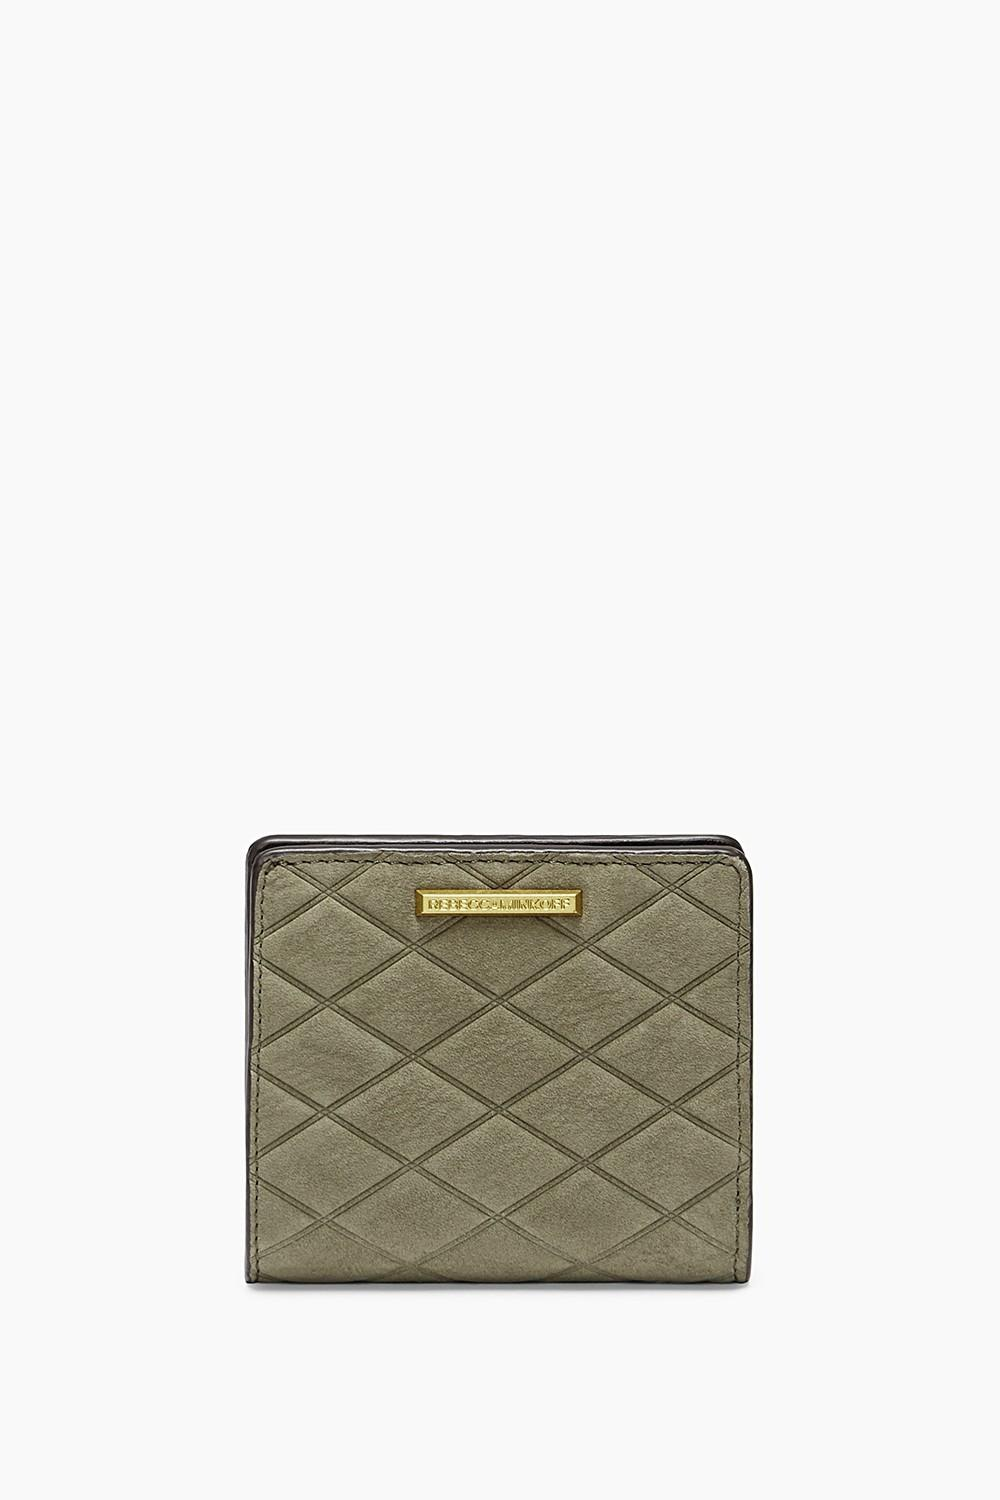 Rebecca Minkoff Embossed Nubuck Snap Wallet In Olive